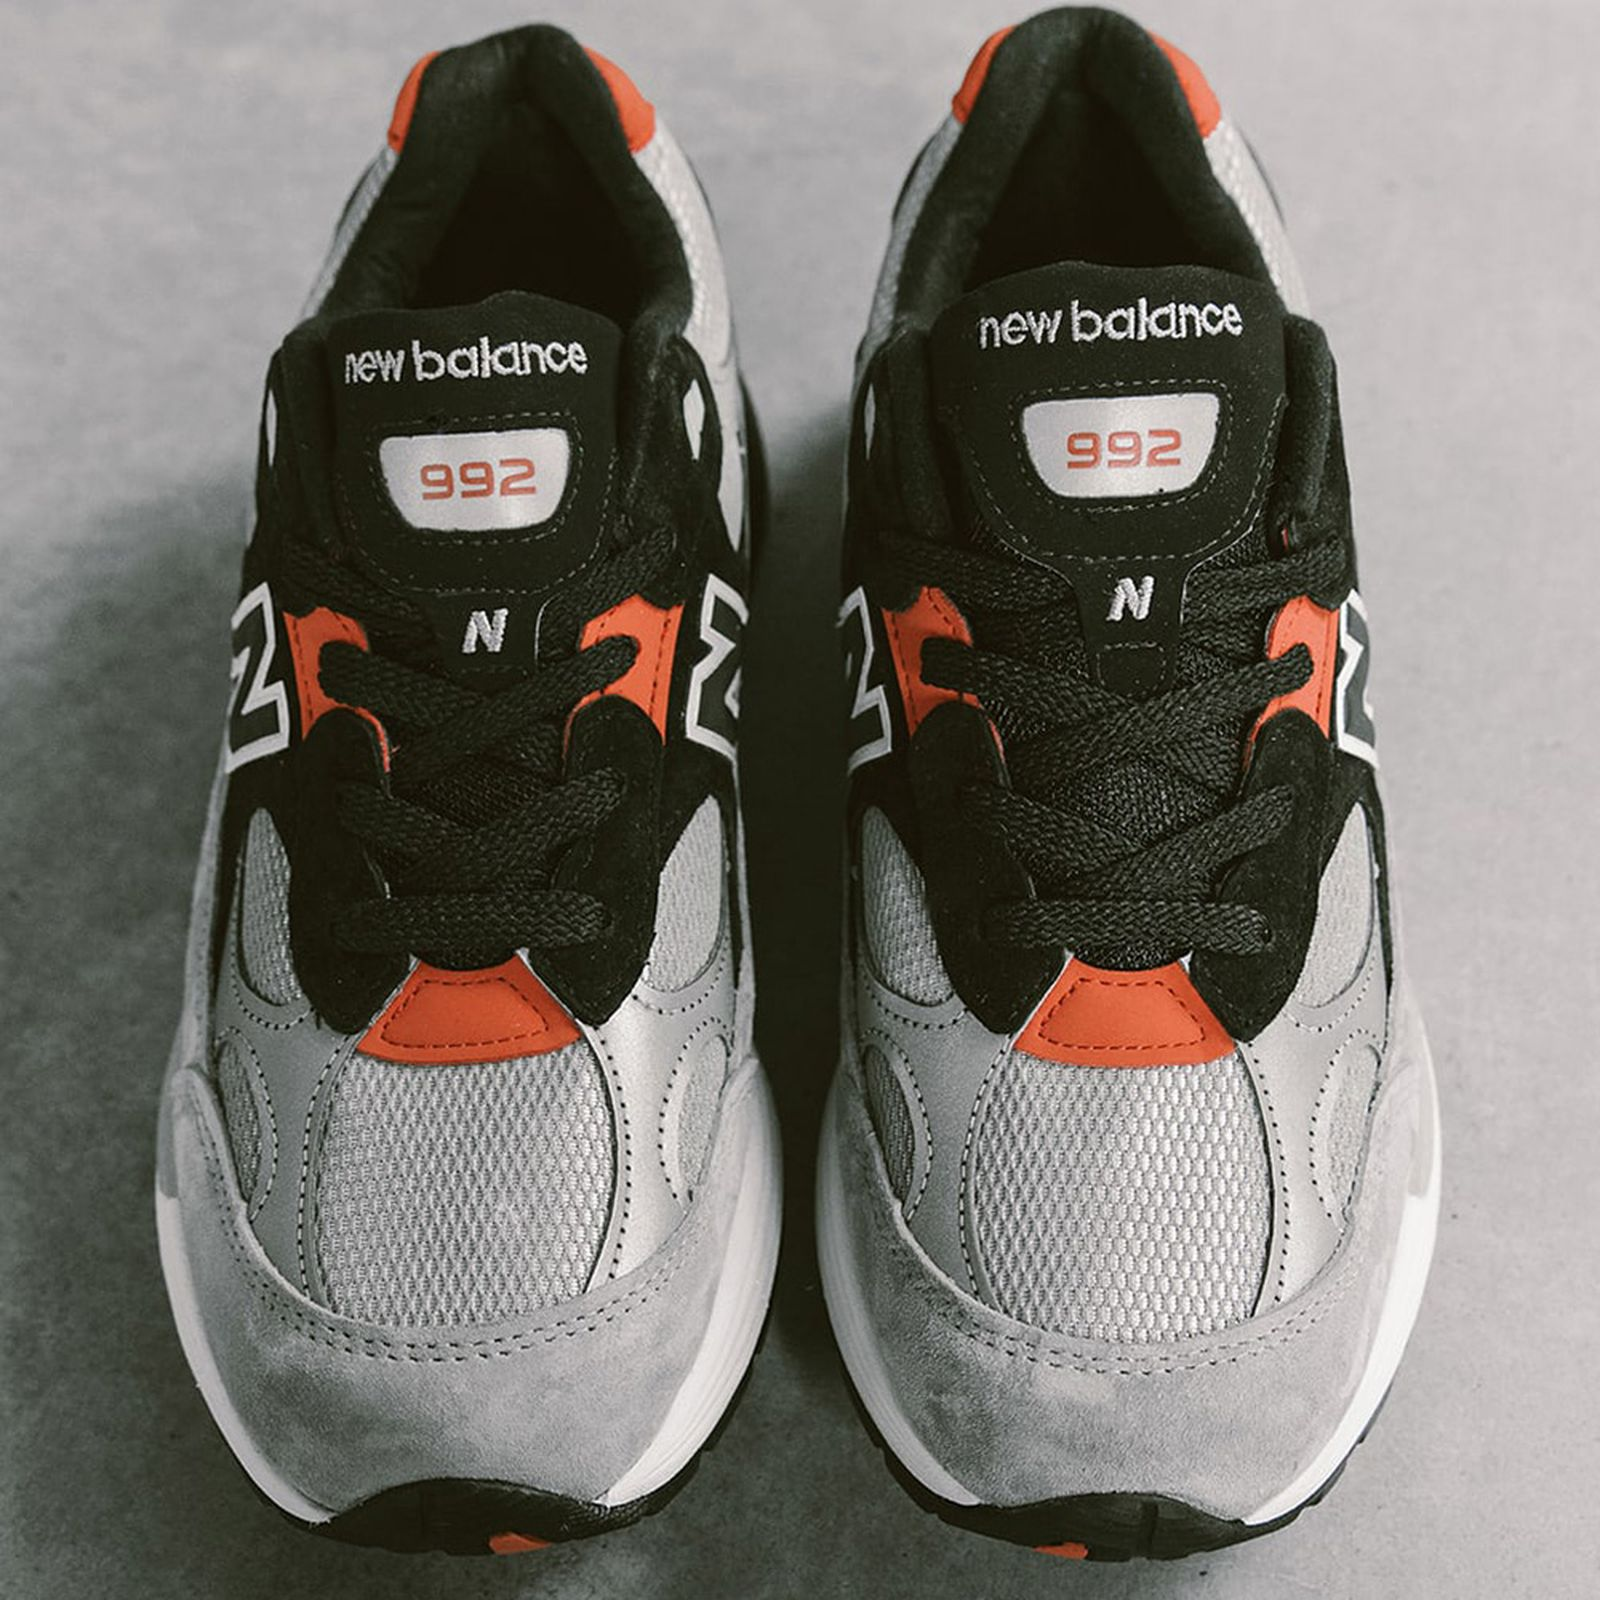 dtlr-new-balance-992-release-date-price-03